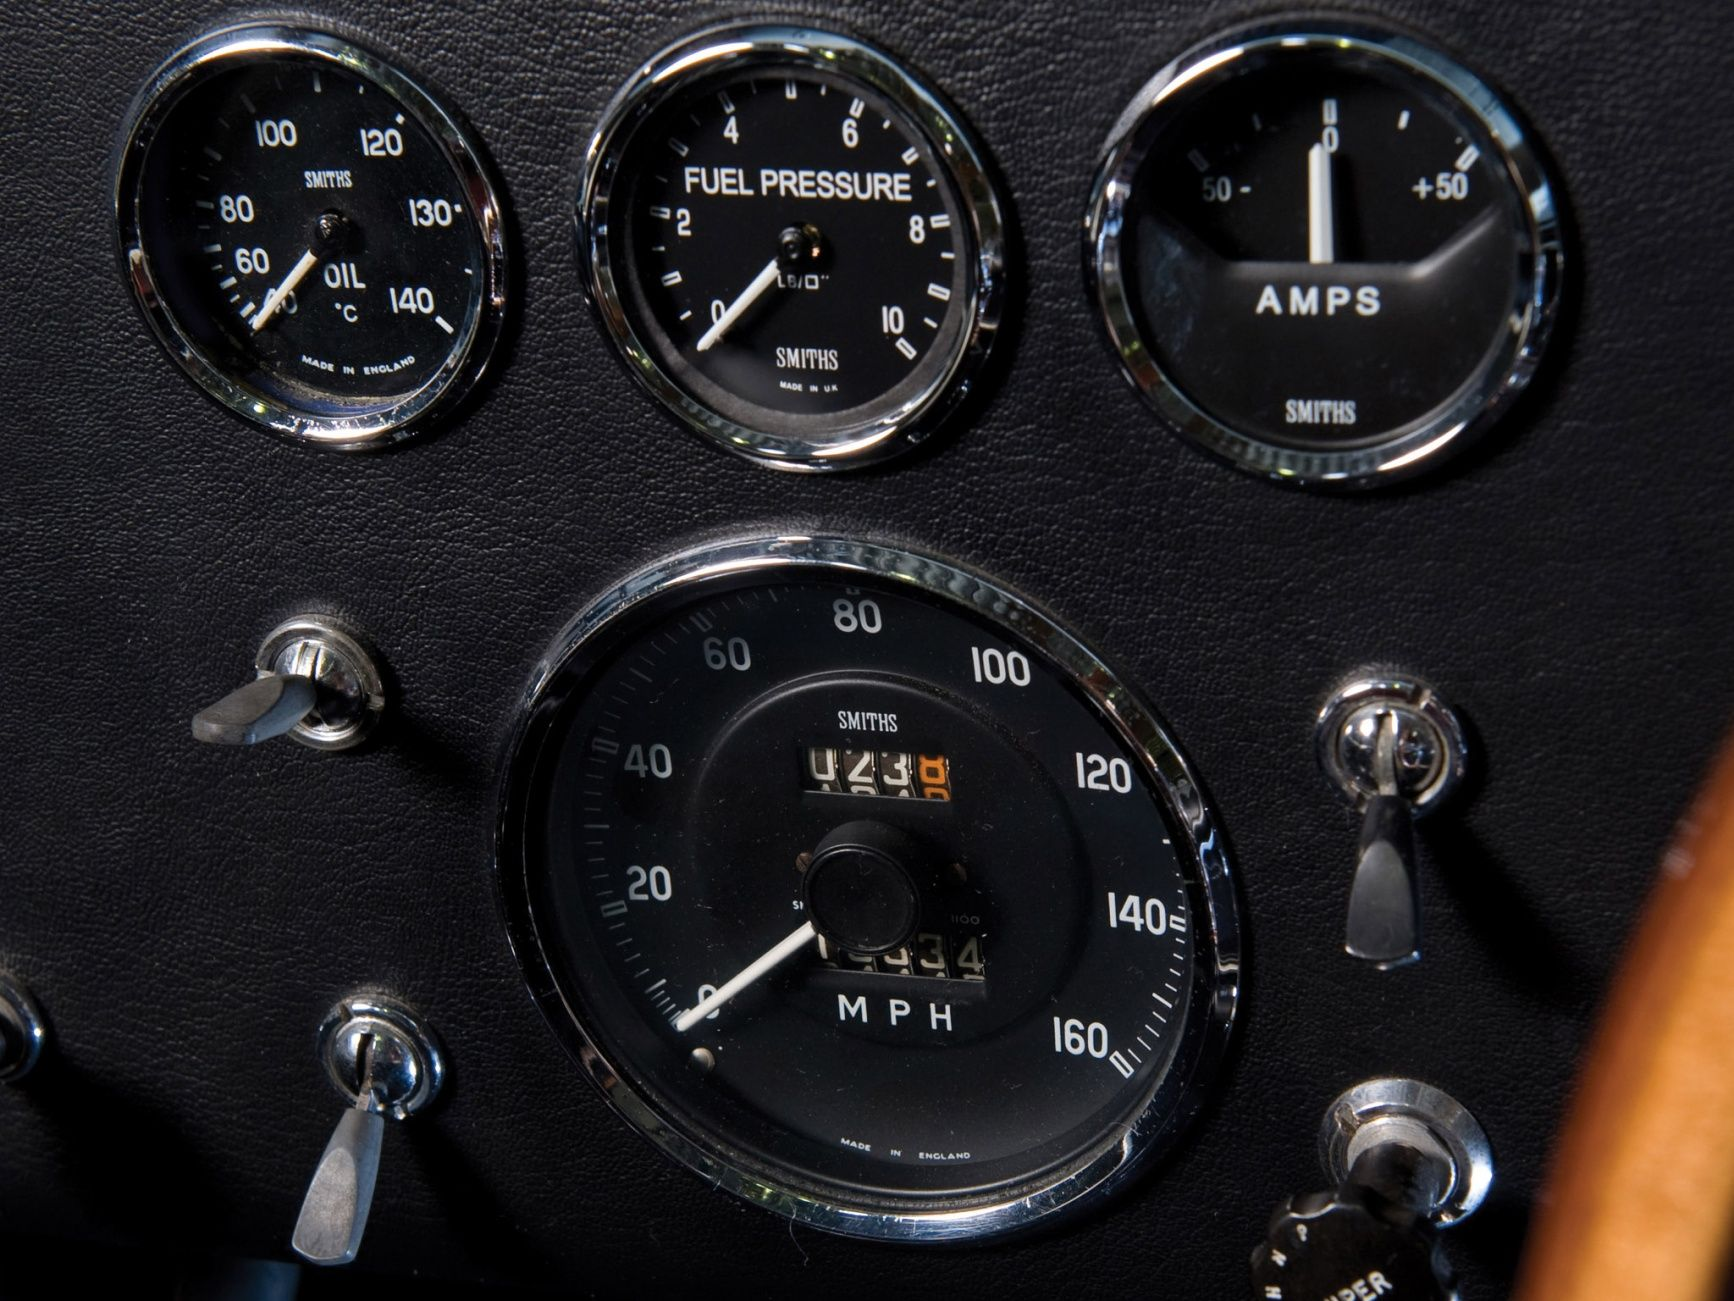 1965 shelby a c cobra 427 s c competition supercars supercar muscle hot rod rods interior wallpaper background